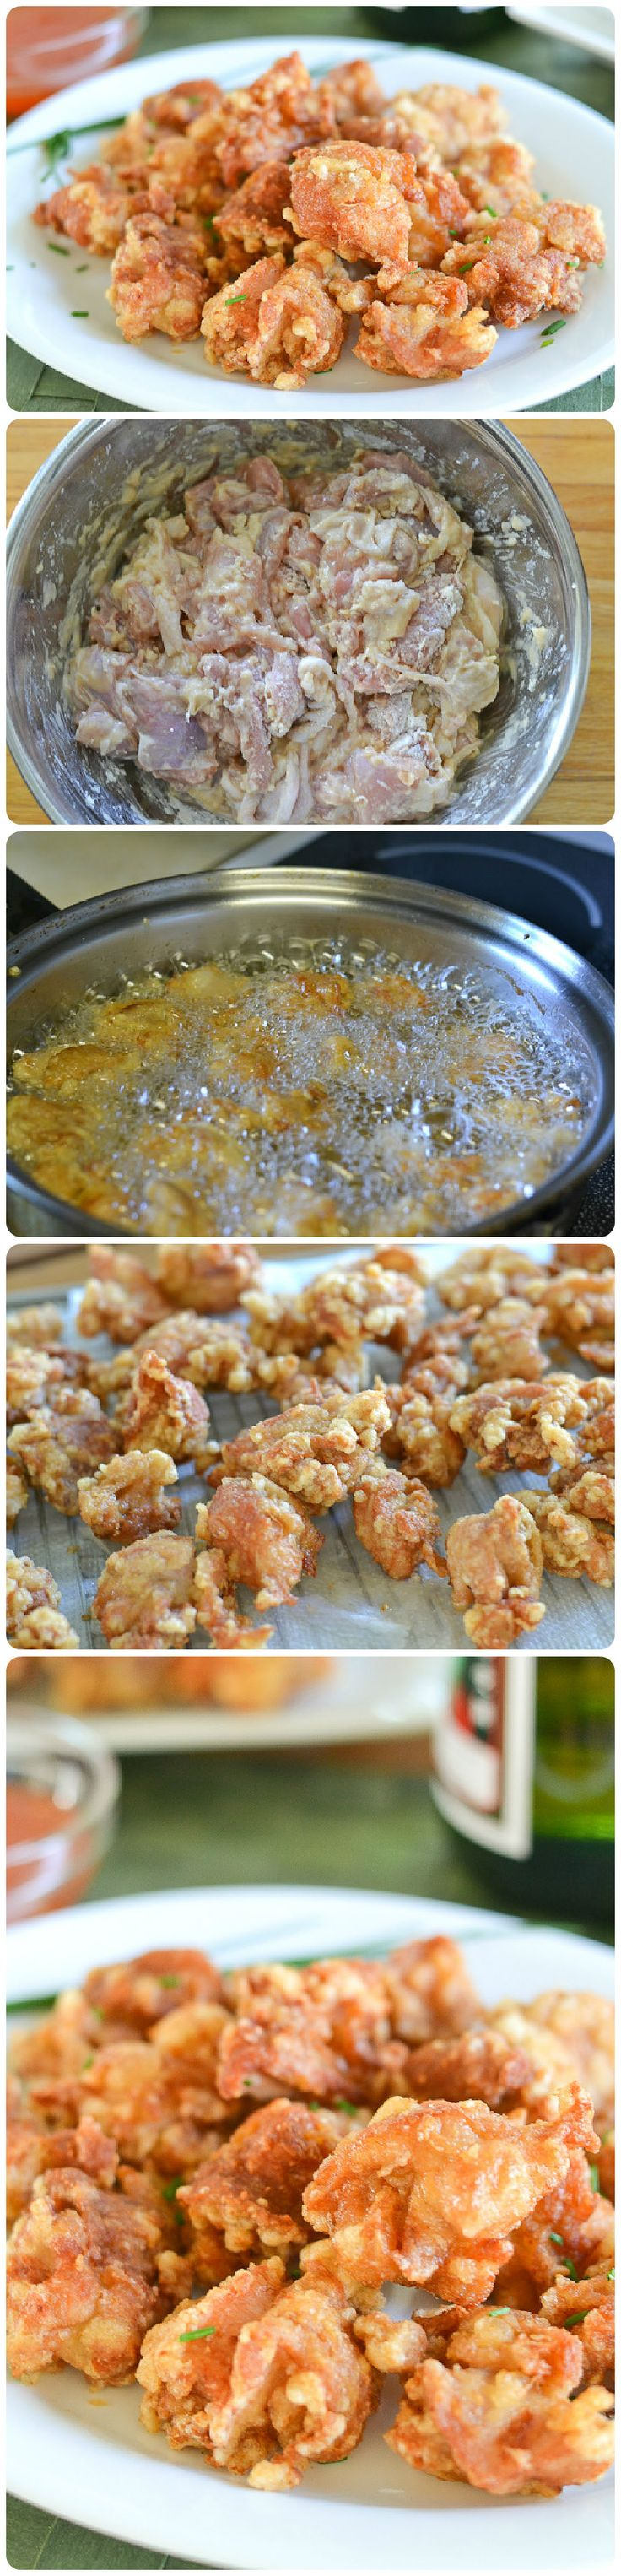 ... chicken karaage japanese style fried chicken chicken kara age japanese